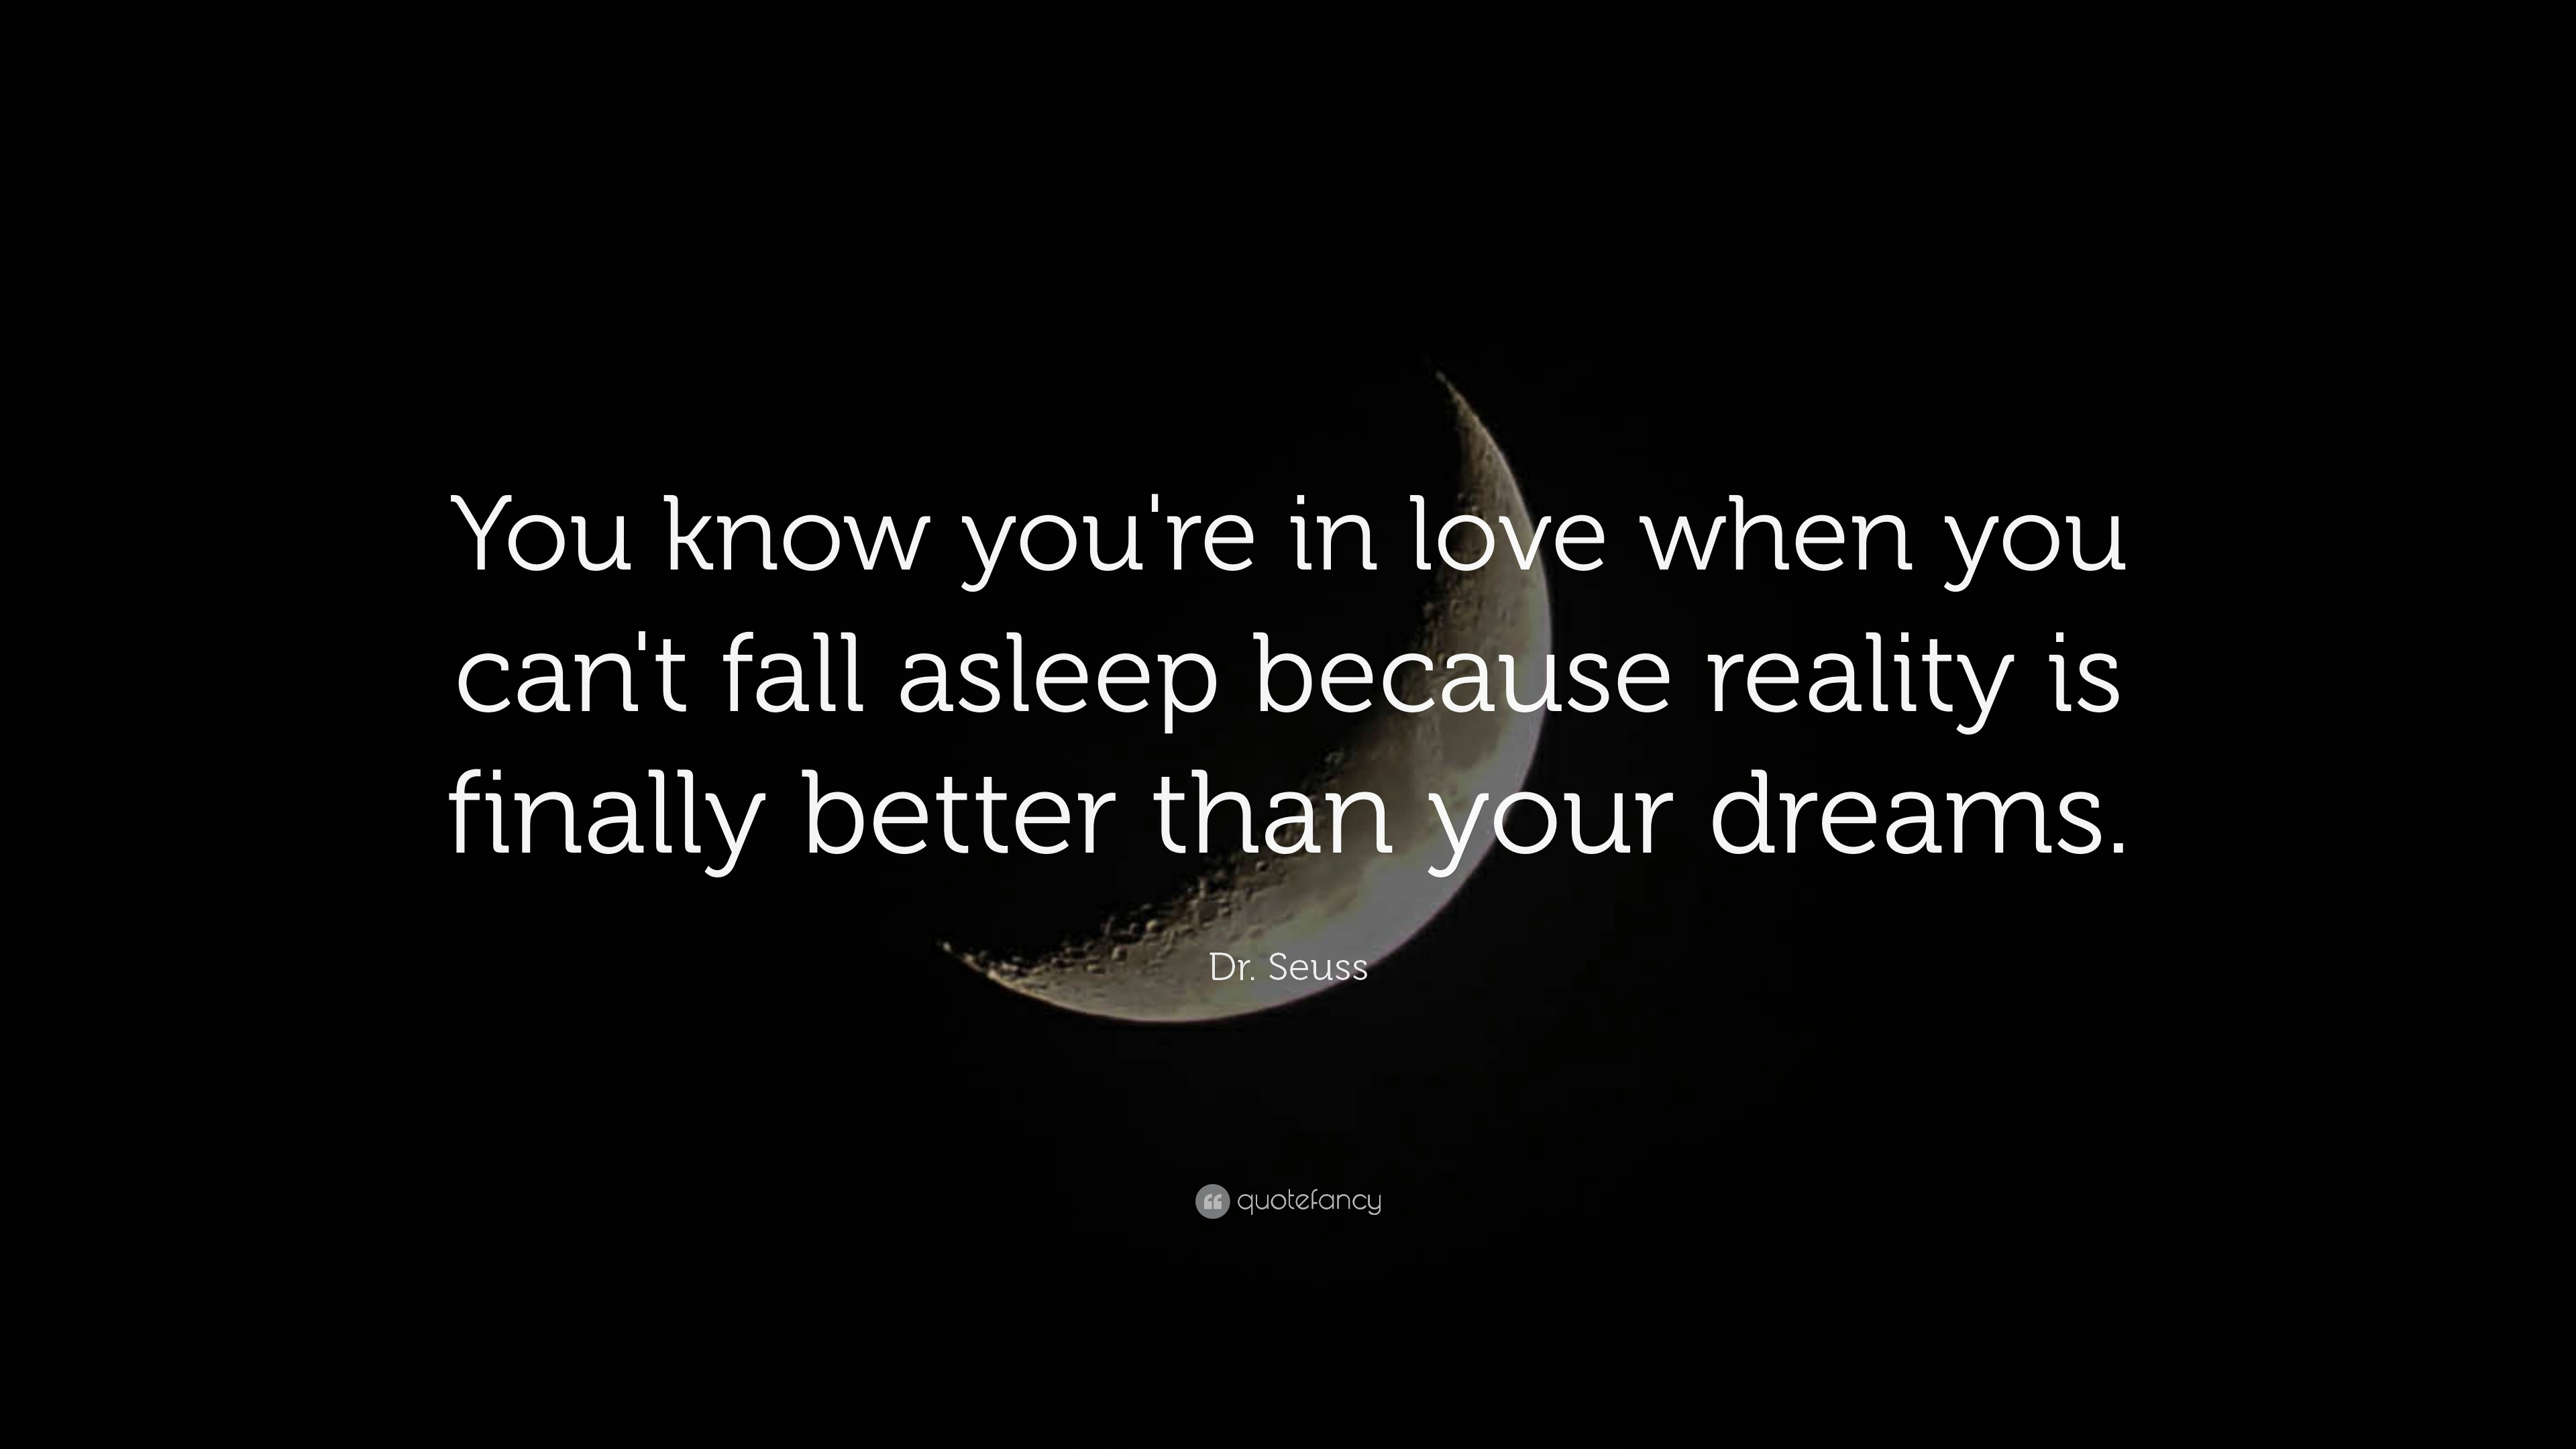 In Love Quotes Best Love Quotes 26 Wallpapers  Quotefancy